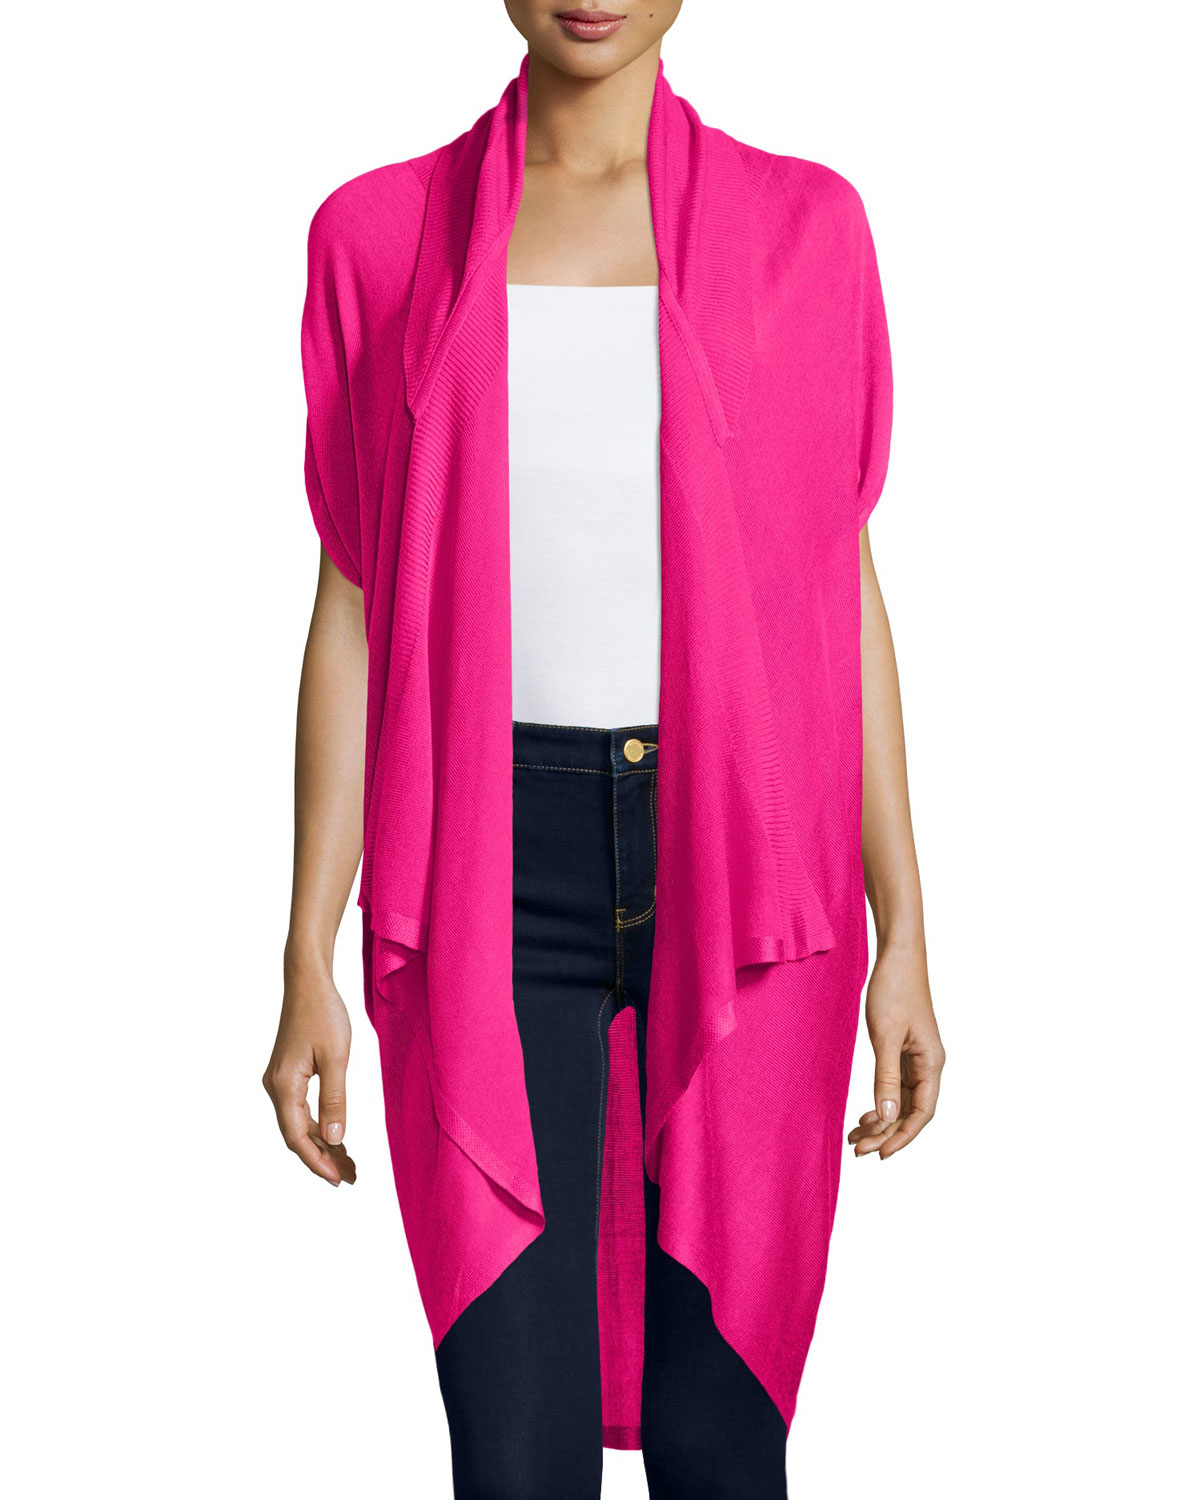 Neiman marcus Drape-front Short-sleeve Cardigan in Pink | Lyst